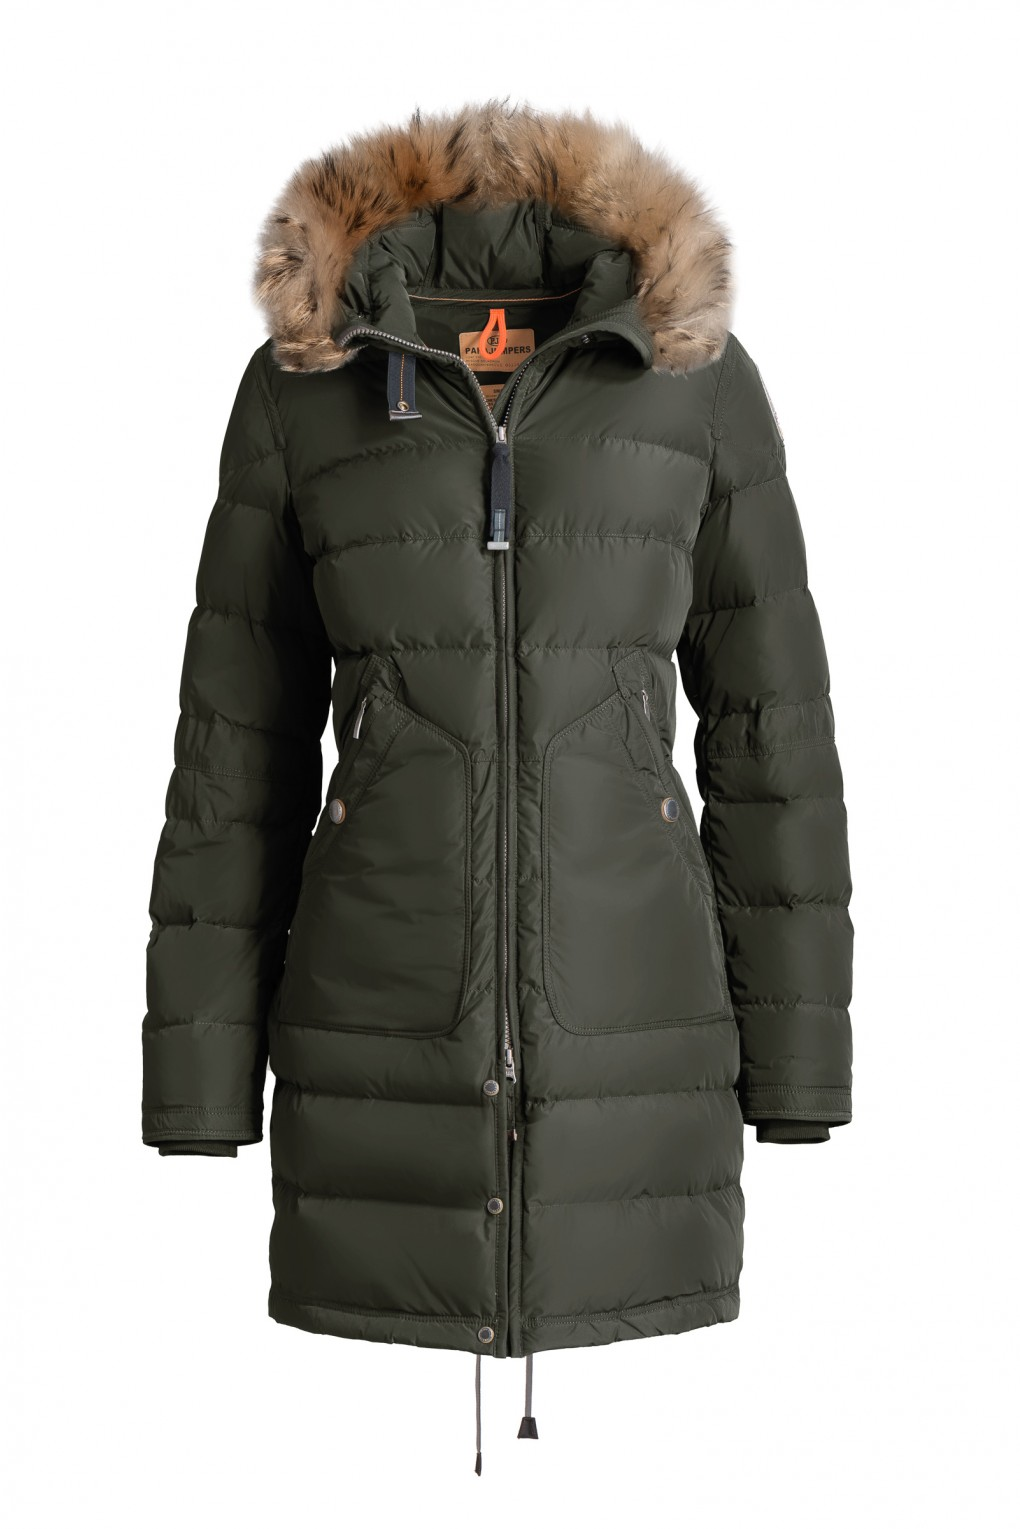 parajumpers long bear sverige